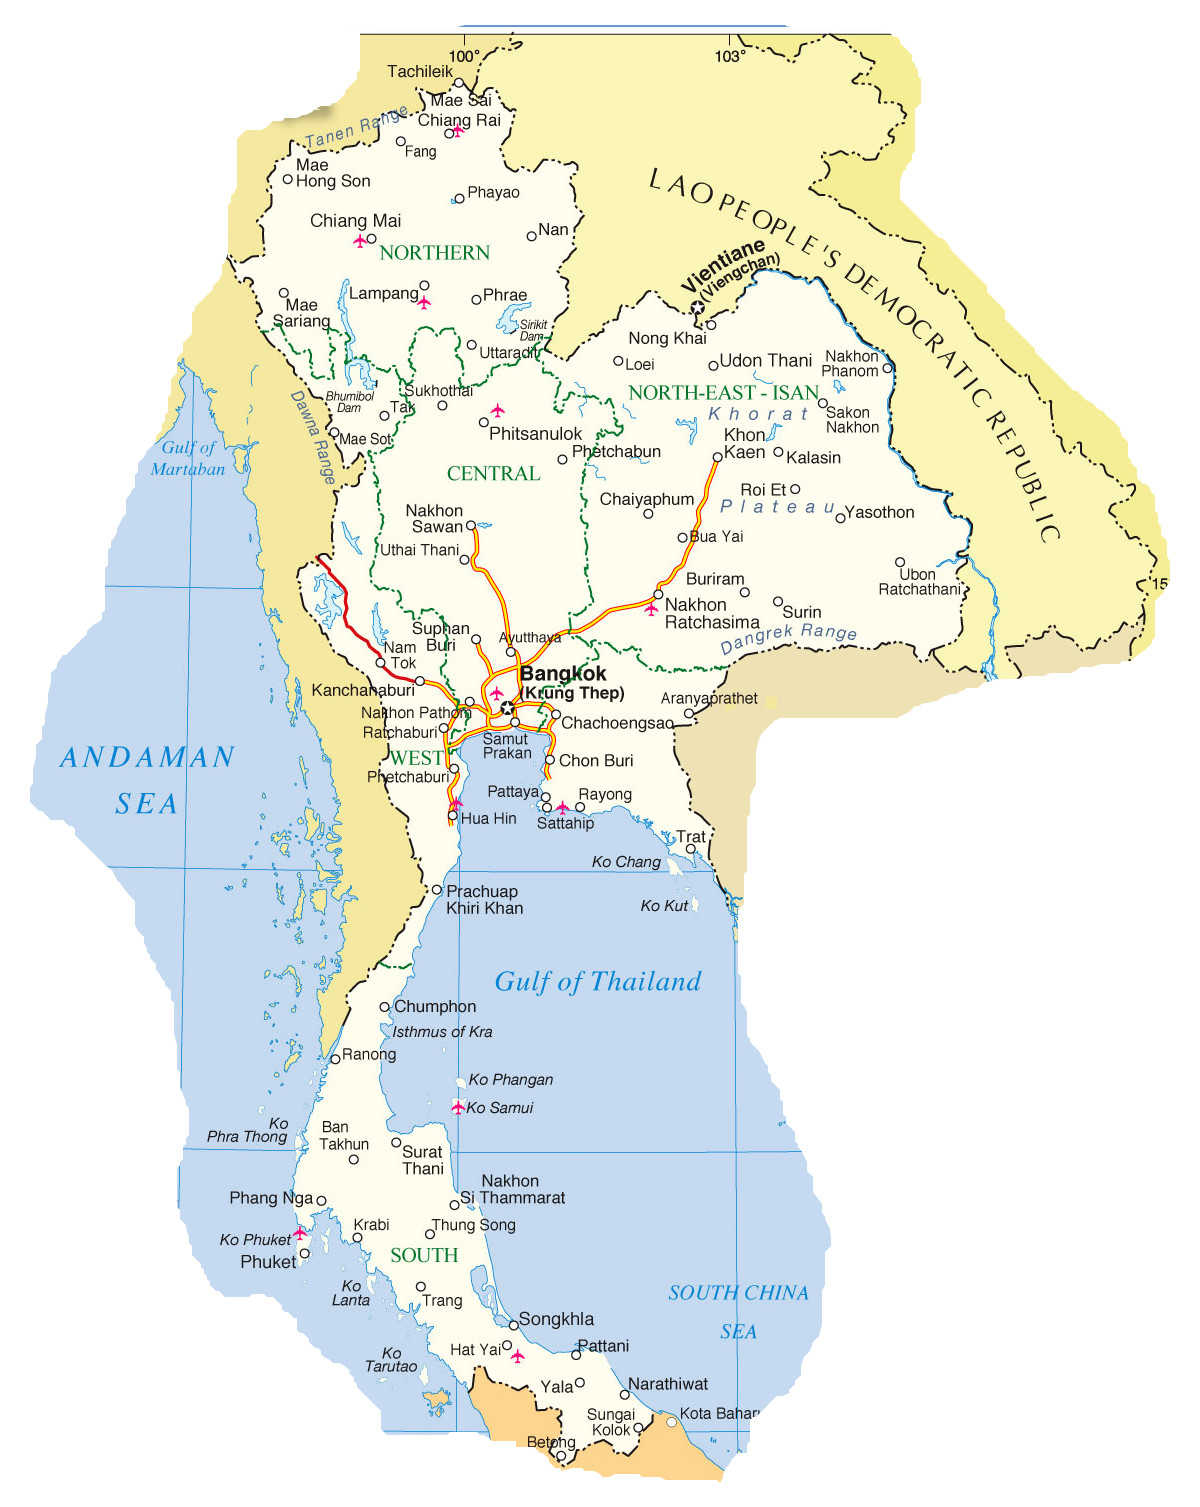 Map of Thailand, showing north-eastern part of Isan